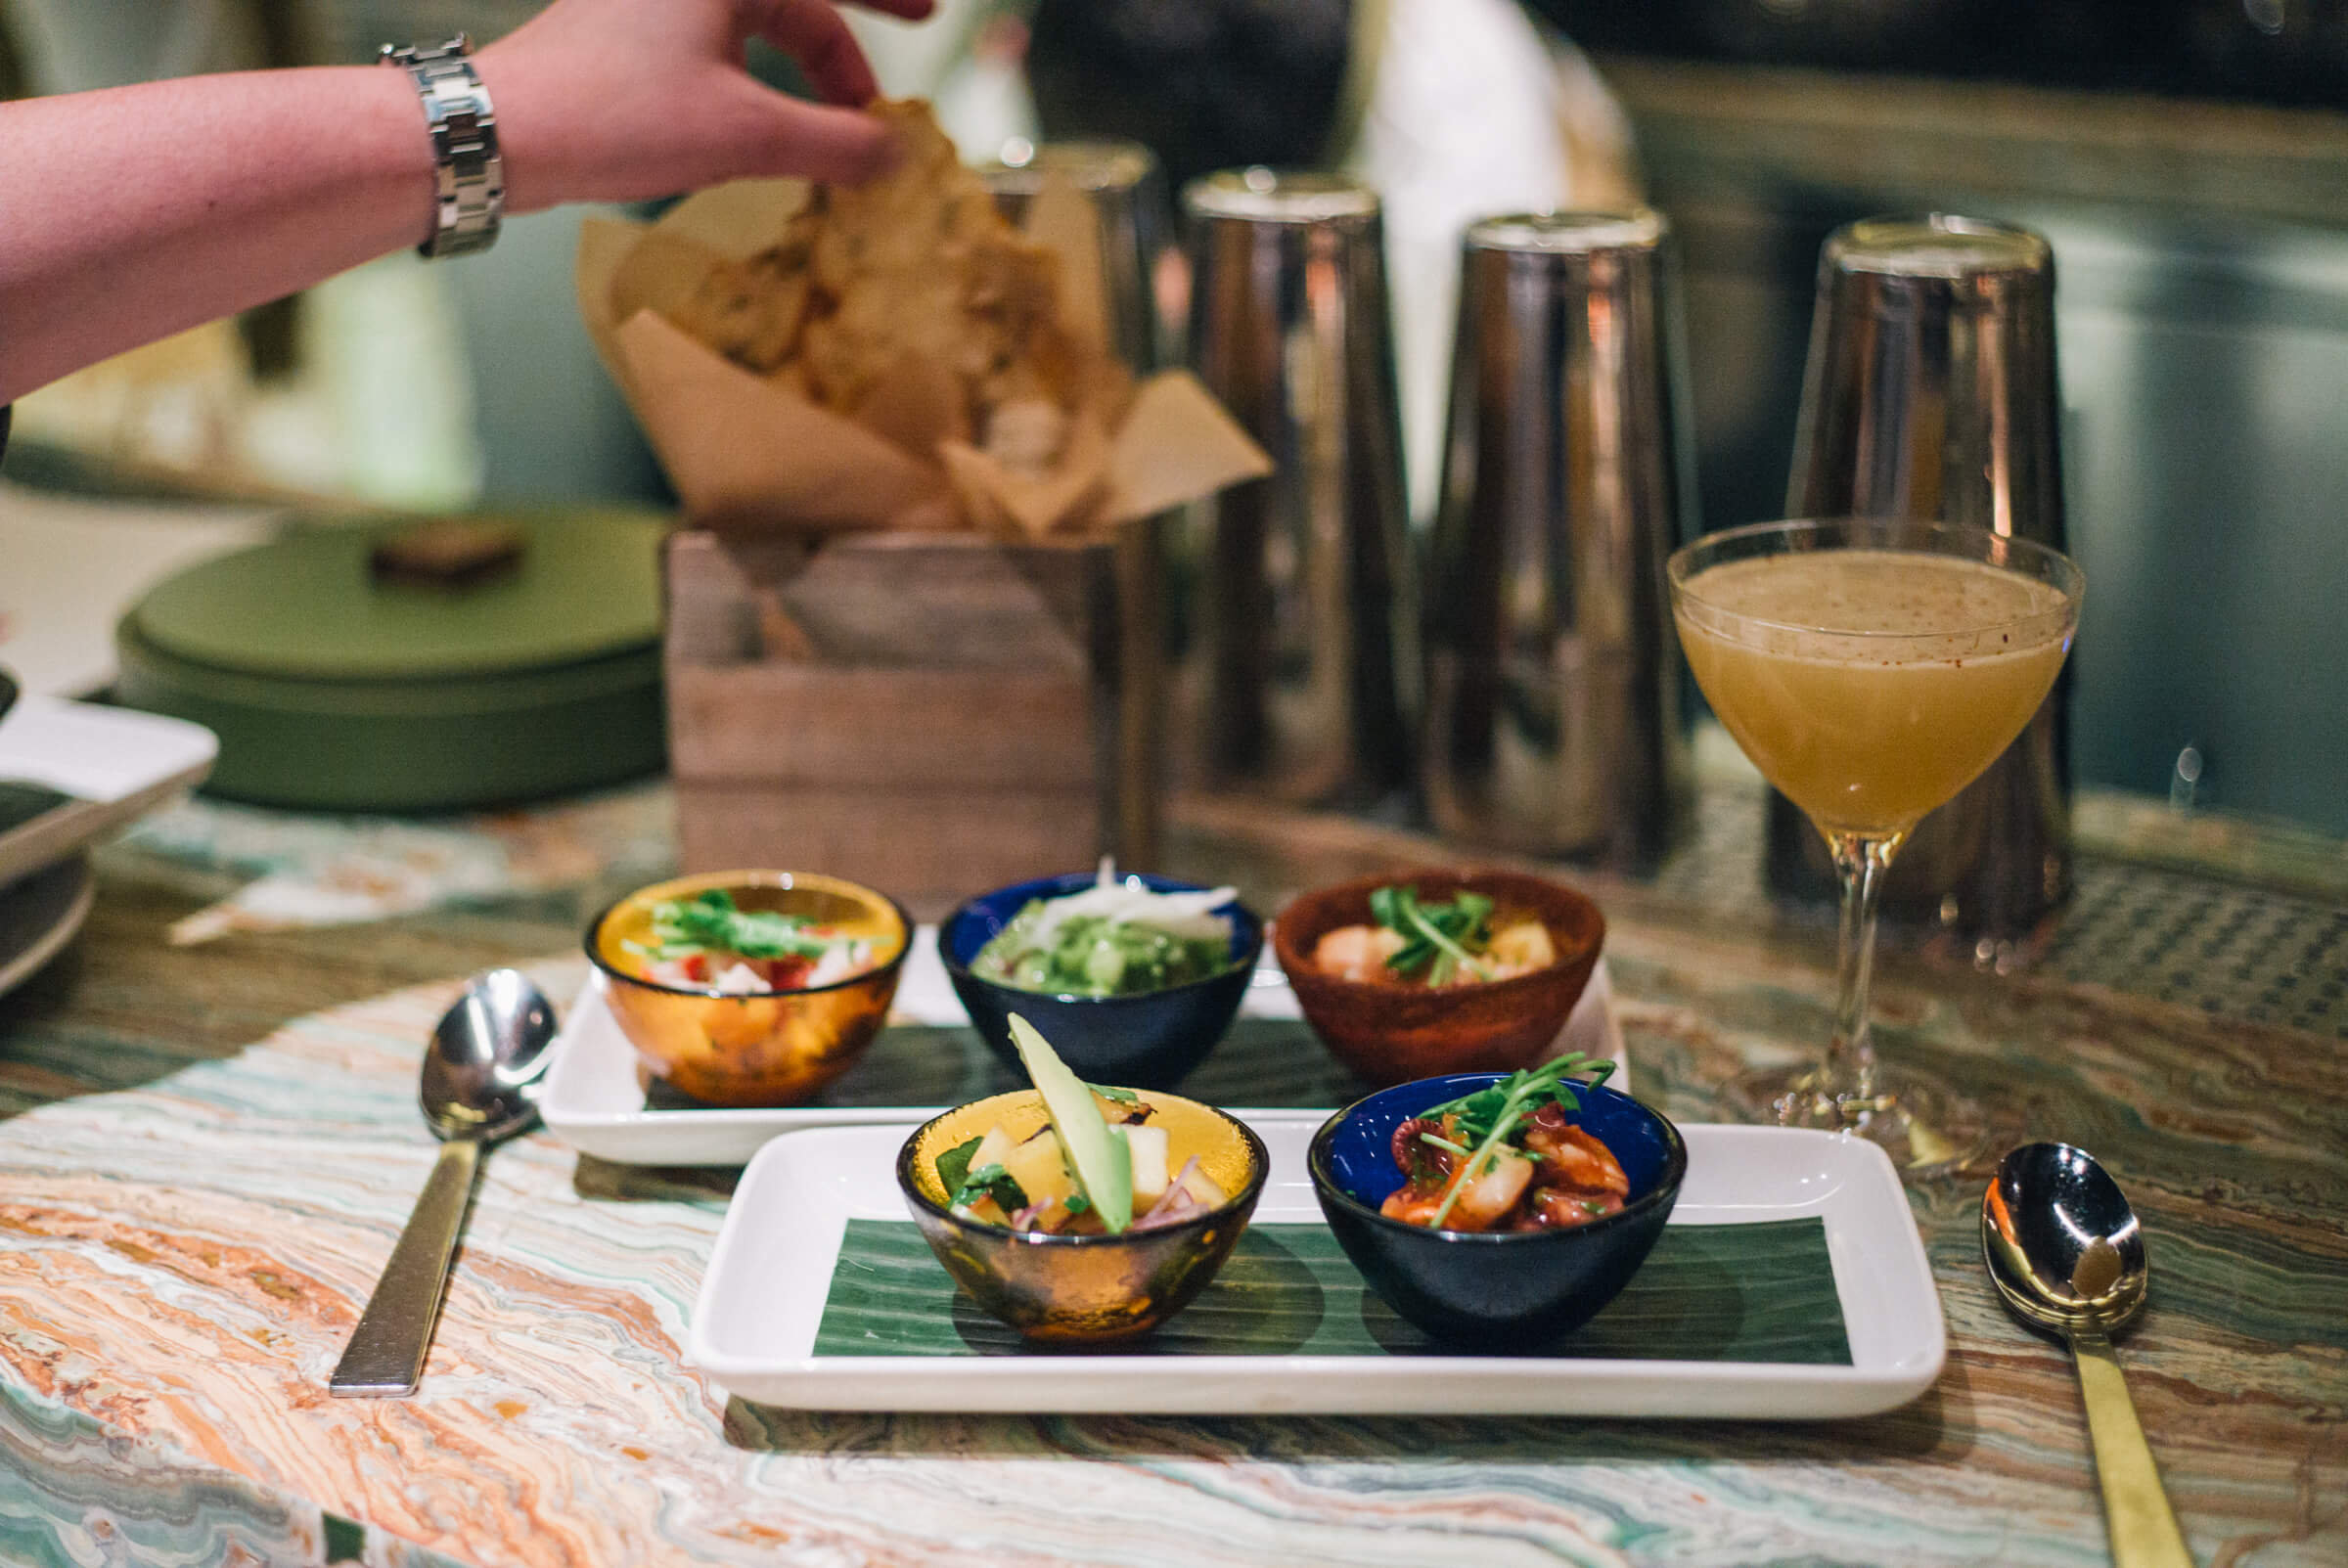 Ceviche sampler at Lena Brava restaurant in Chicago, The Taste SF